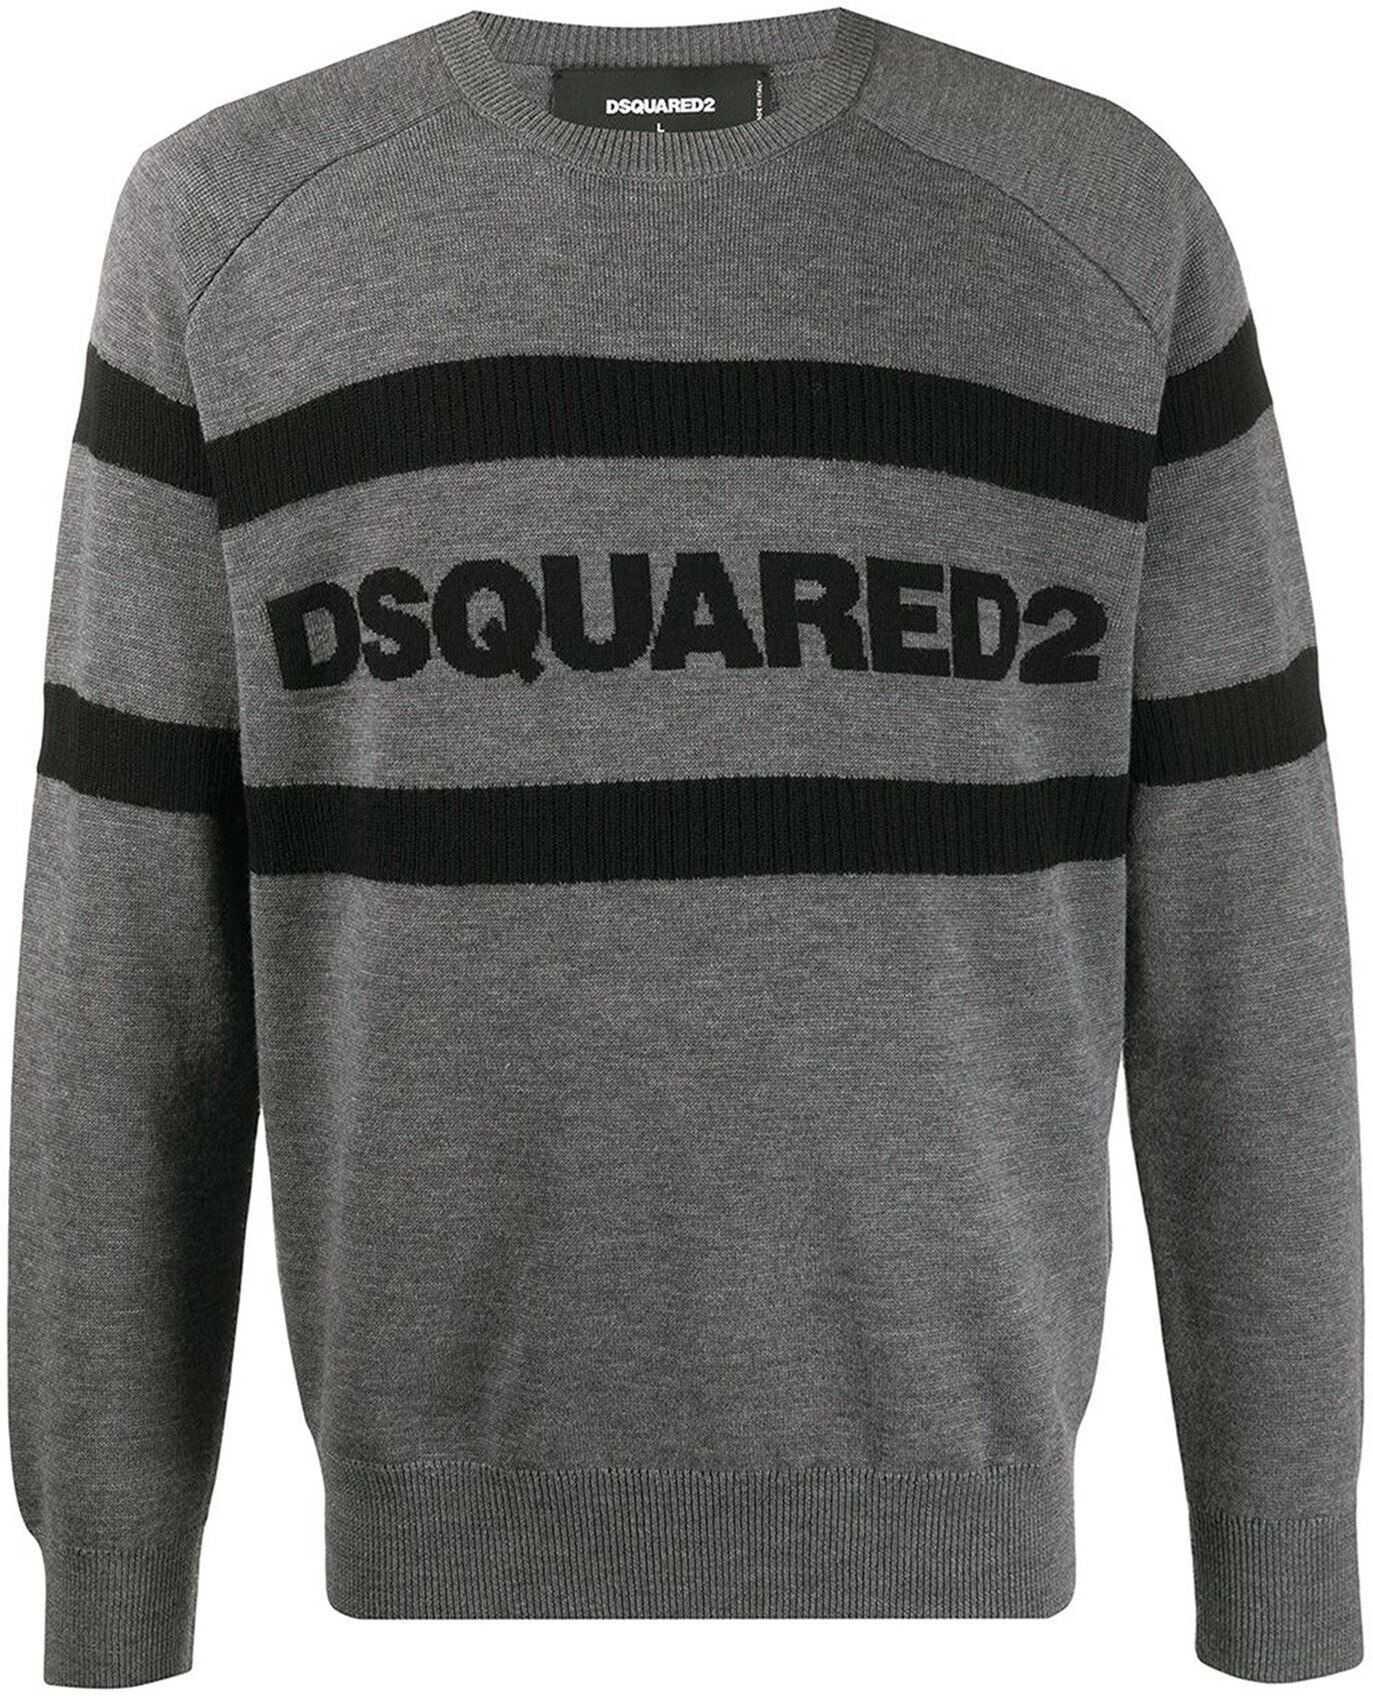 DSQUARED2 Logo Sweater In Grey Grey imagine